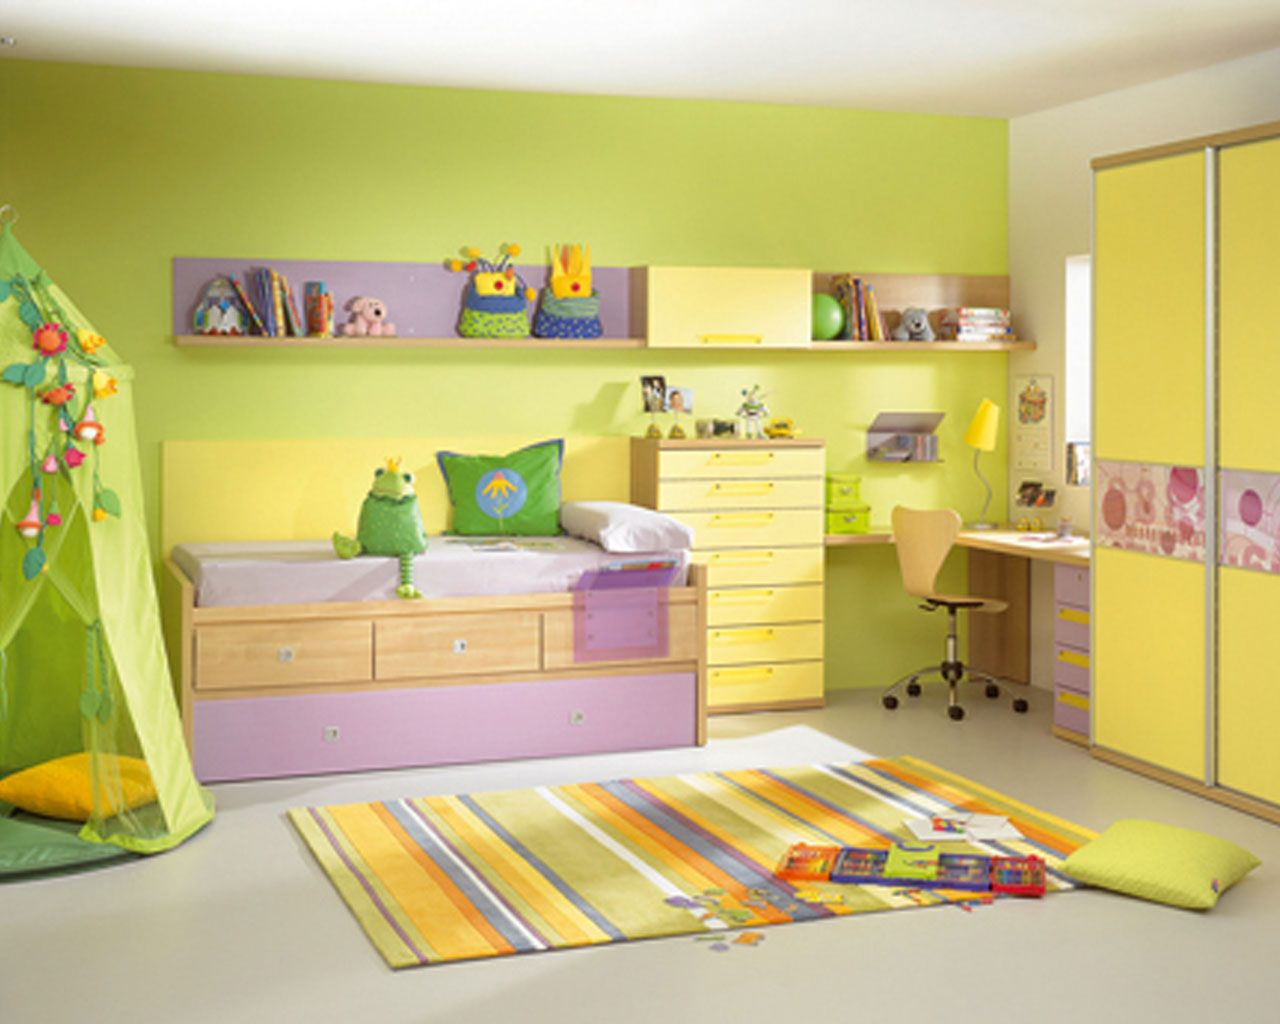 Lime green and white themed kids room paint ideas with simple brown wood bed frame that have - Child bedroom decor ...